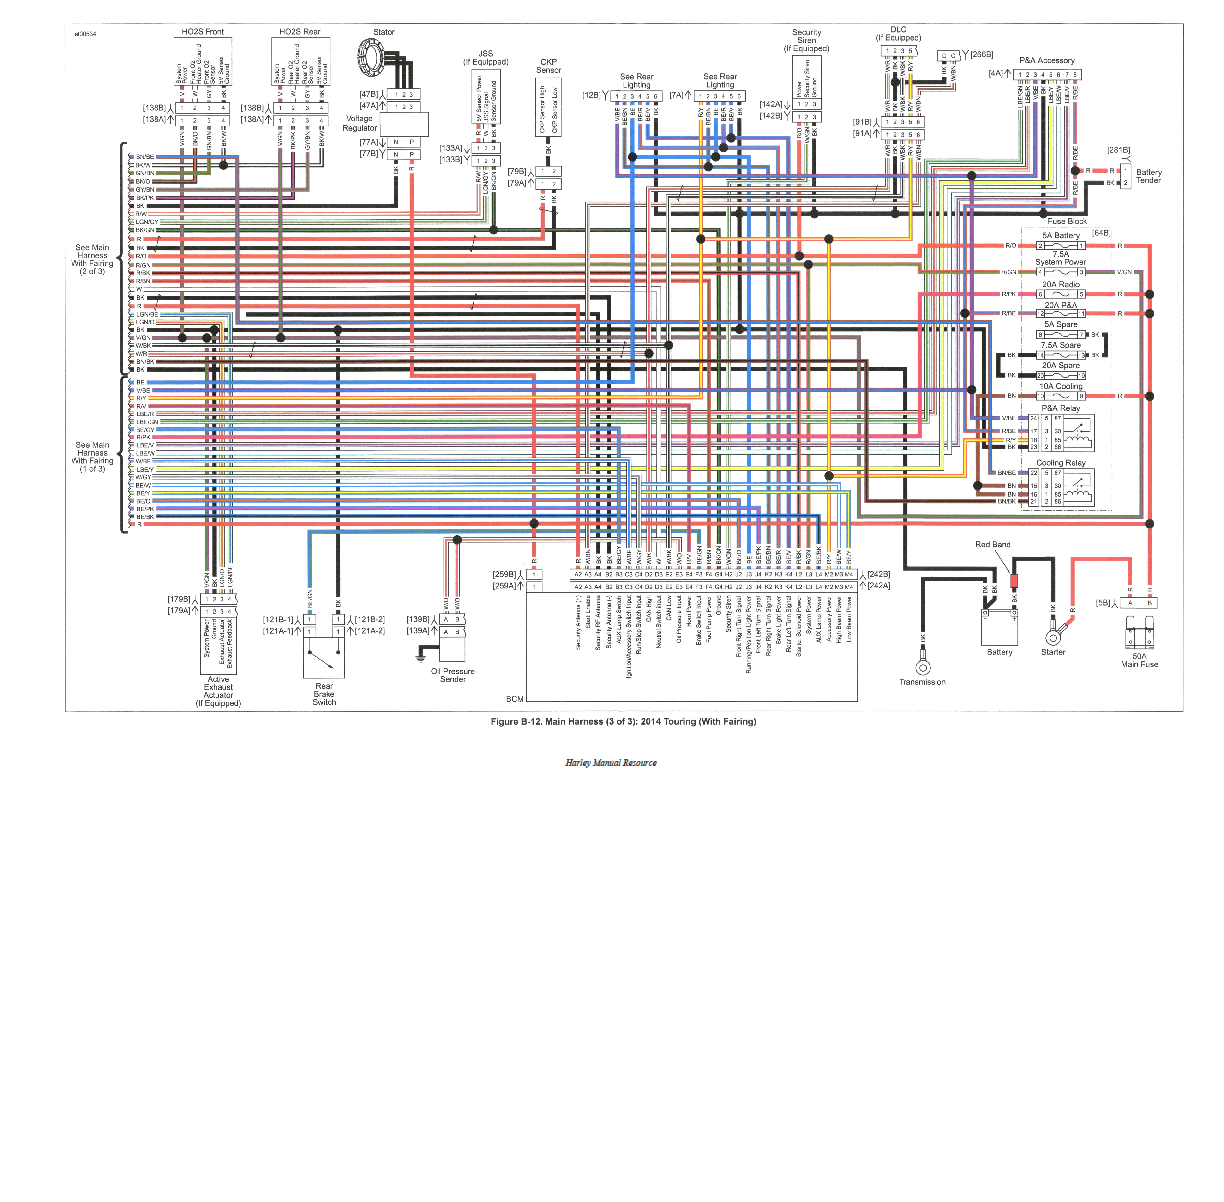 Street Glide Tail Light Wiring Diagram - My Wiring Diagram on 99 harley wiring diagram, 1989 harley wiring diagram, 1999 harley ignition diagram,